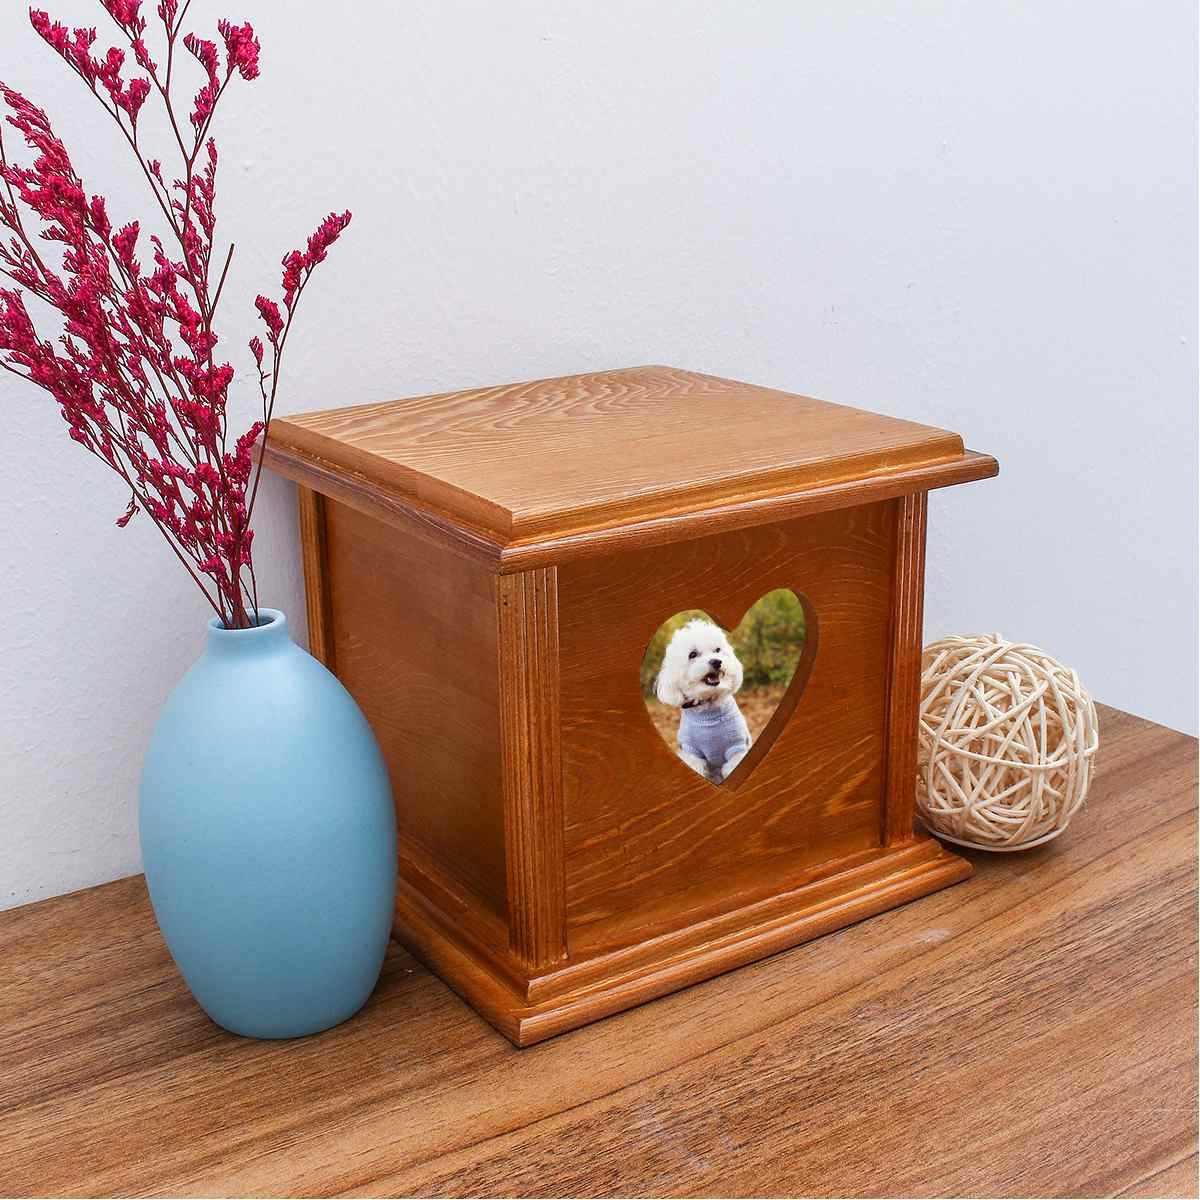 18.6x18.6x16.5cm Large Wood Urn Dog Cat Caskets House For Ashes Cremation Funeral Memorial Pet Urns Coffin Box Can Put Picture